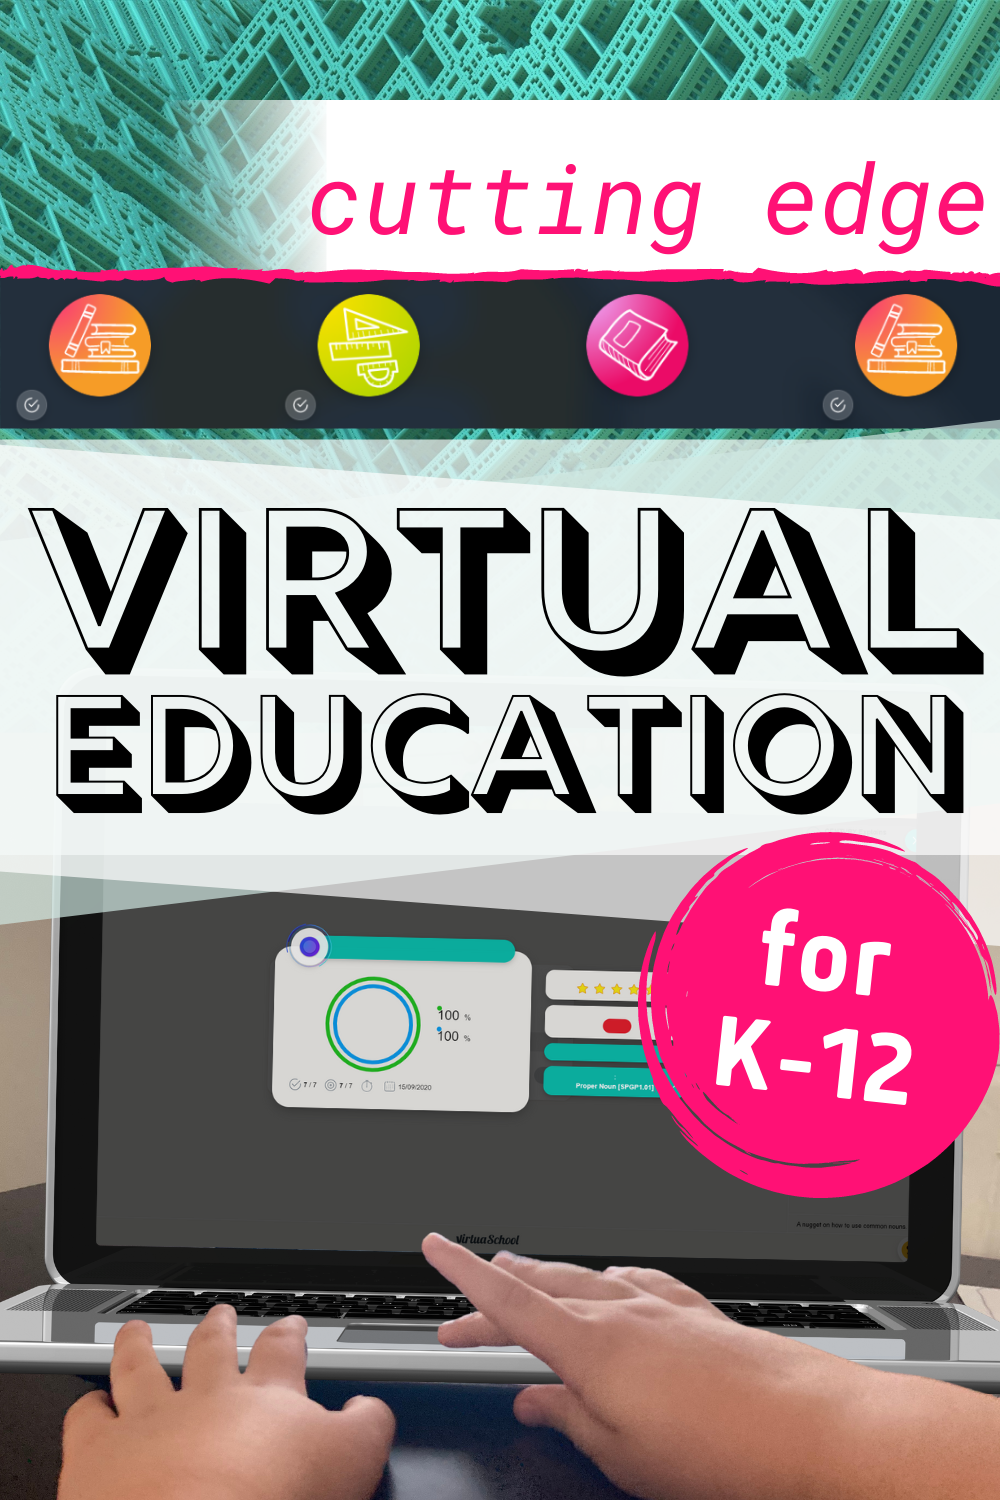 Virtual Education with Virtua from Homeschool Buyers Co-op. Affordable online learning from K-12. #homeschool #onlinelearning